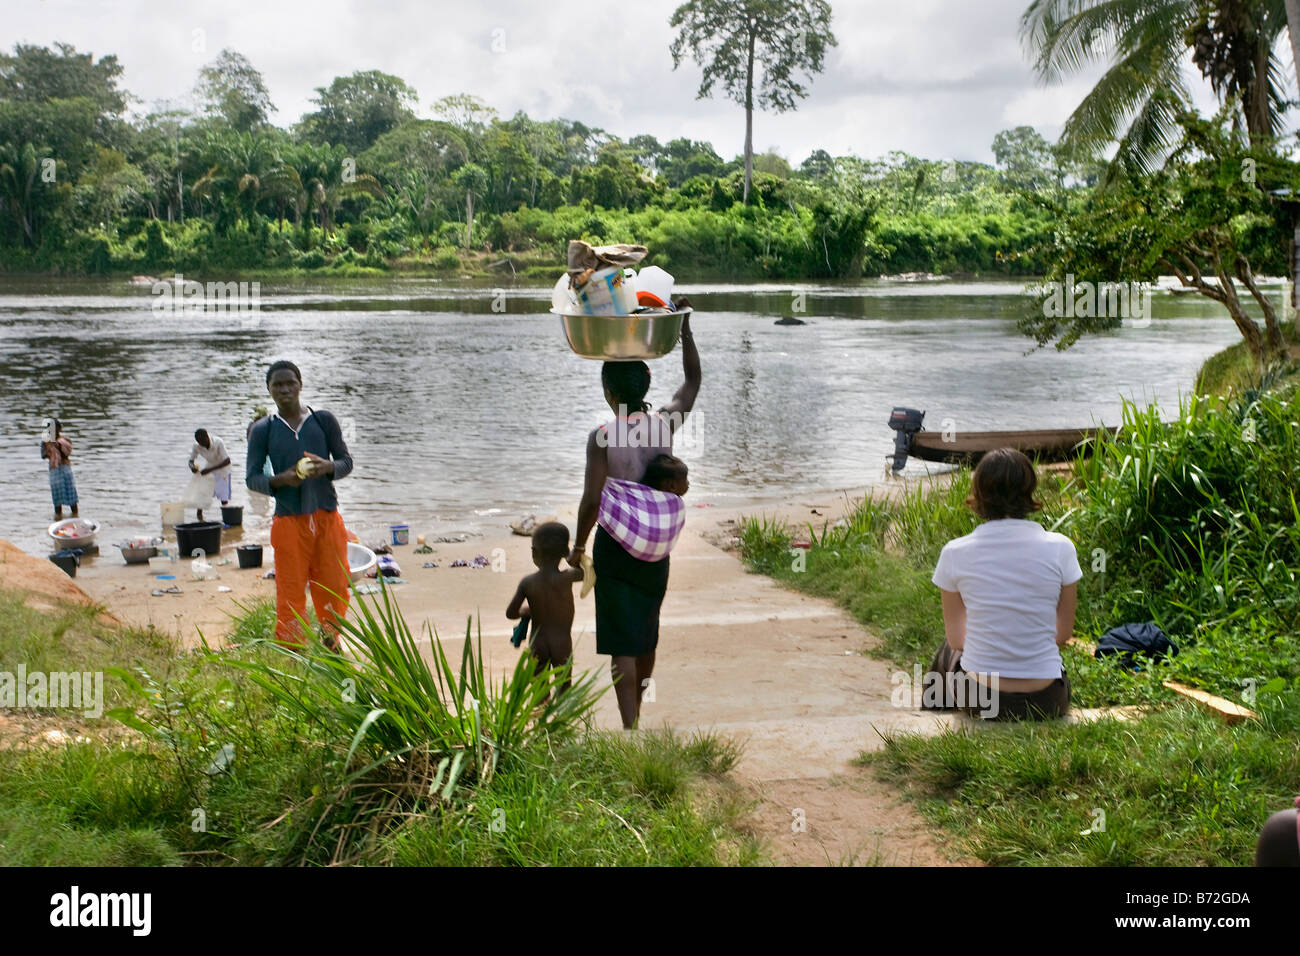 Suriname, Laduani, at the bank of the Boven Suriname river. People from Saramaccaner tribe at river bank. Tourist. - Stock Image